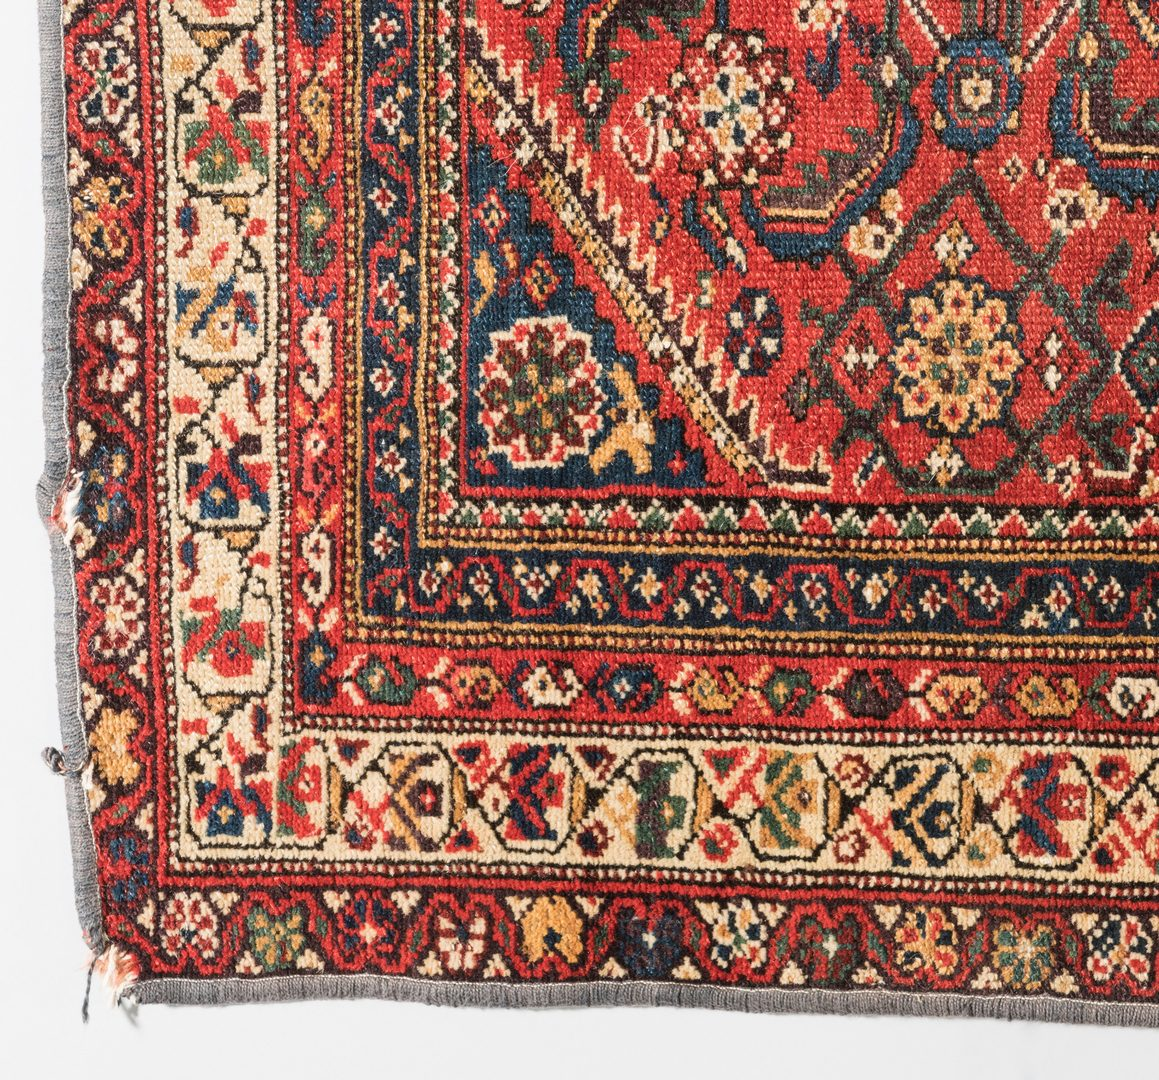 Lot 304: Antique Kurdish Runner, 12.7 x 3.6